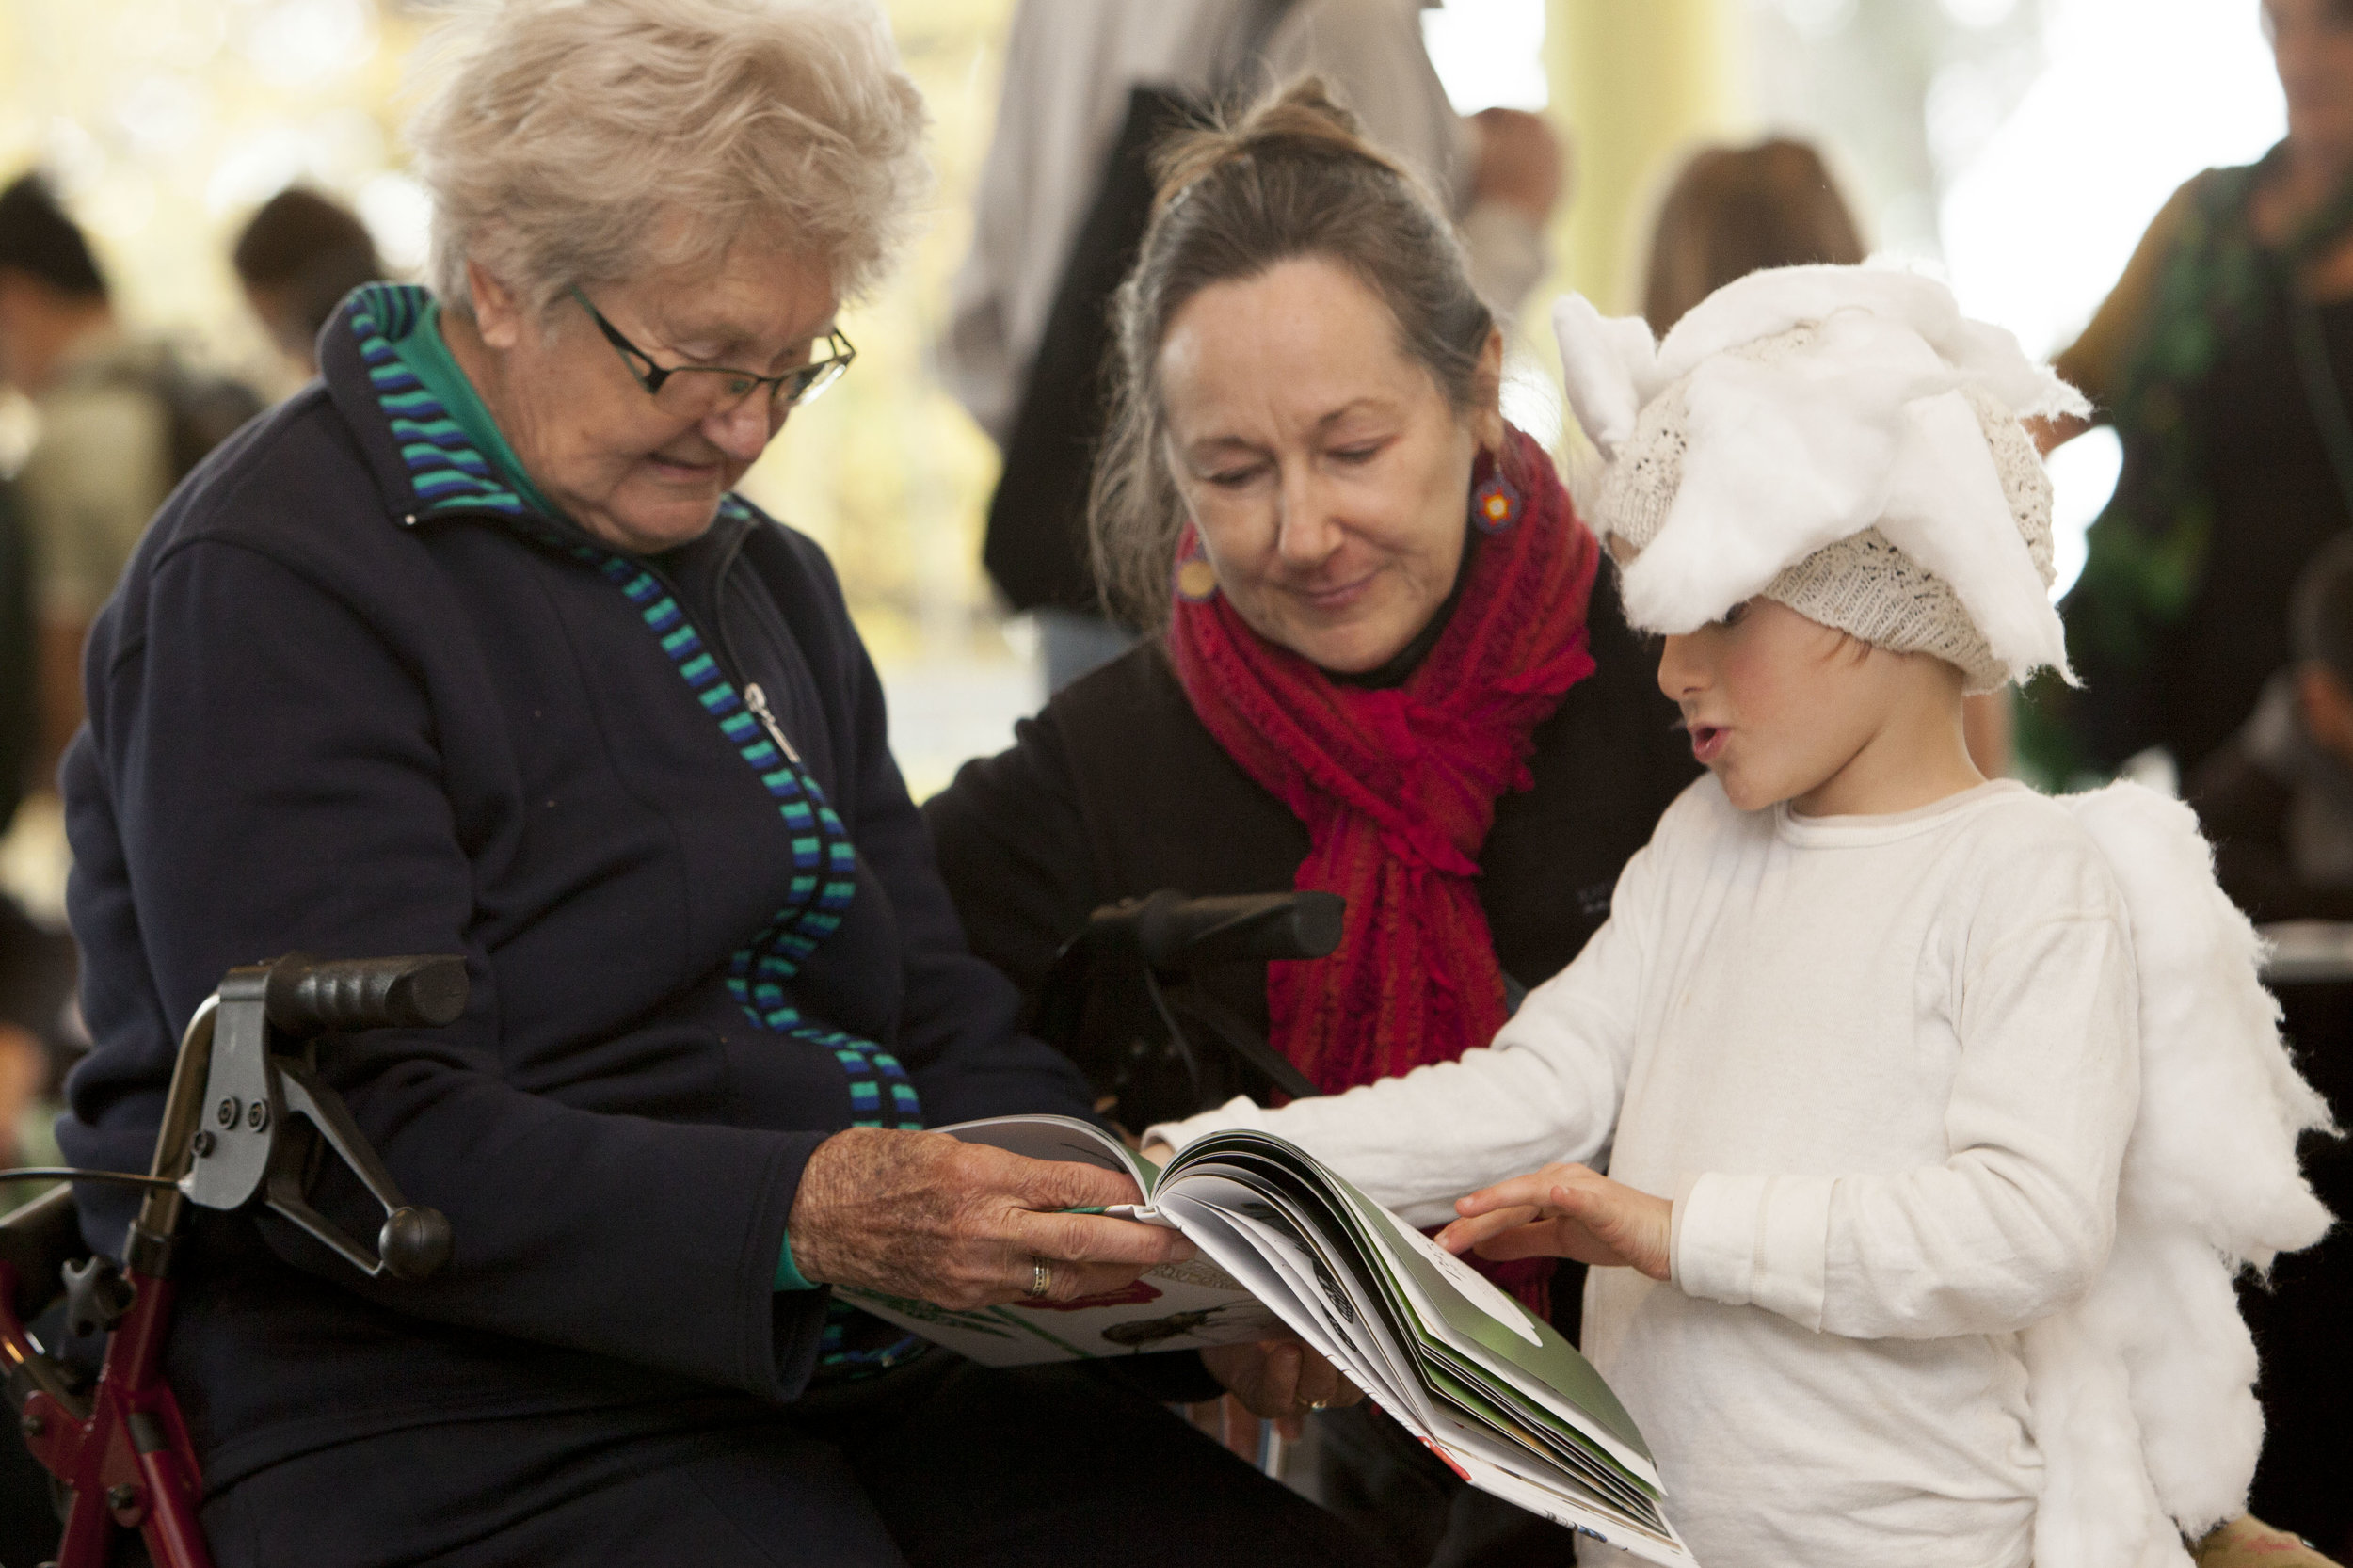 This unique book will hopefully allow both children and adults to engage with the insects around our city, enhancing the public's appreciation of the biodiversity that makes Melbourne special. Co-author Sarah Bekessy's son is pictured here dressed as a 'fluffy bum' (the nymph stage of the Passionvine Planthopper) at the book launch. Image: Sarah Bekessy